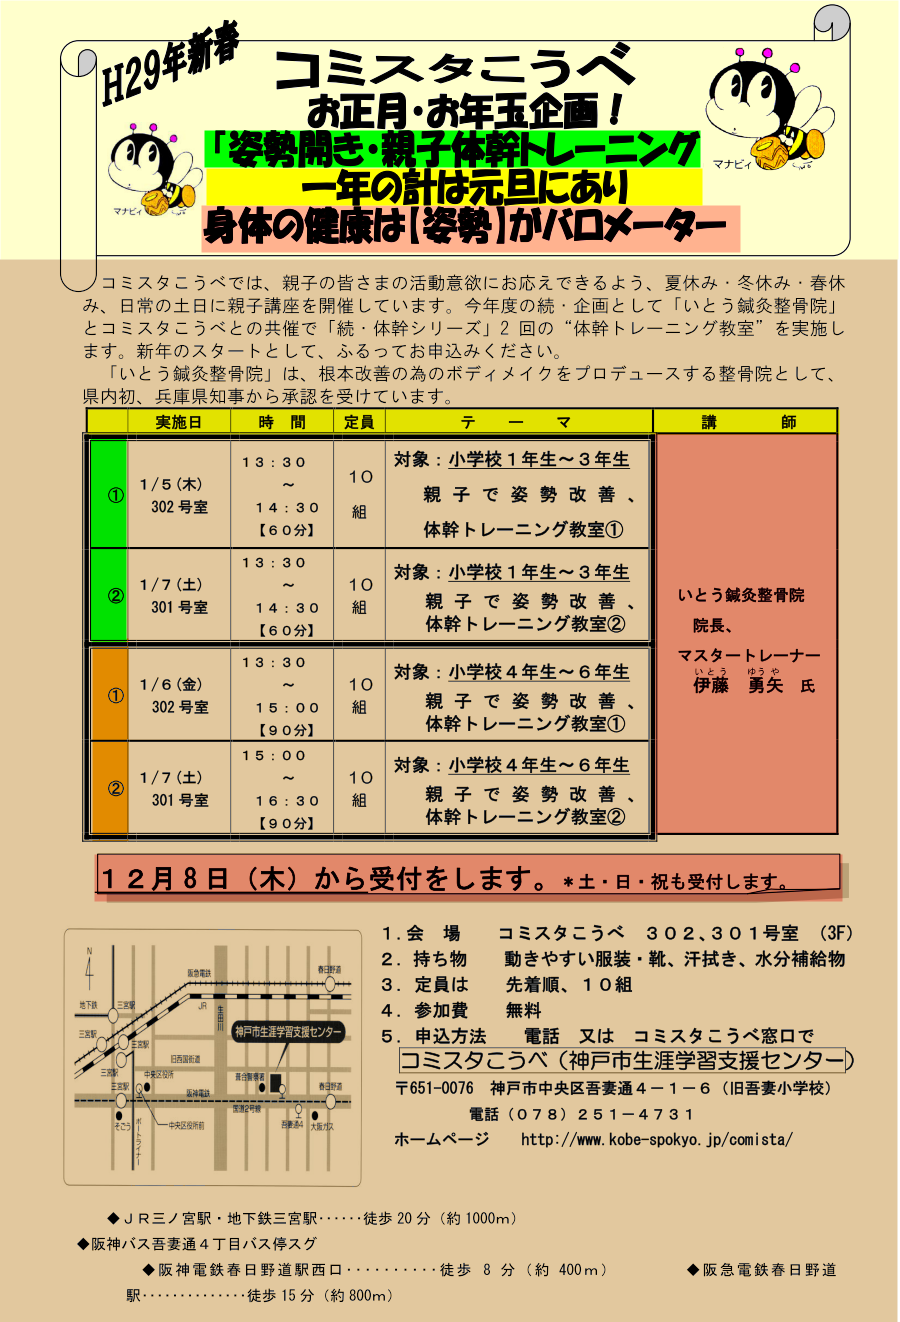 taikan-training-h29-01-new.png